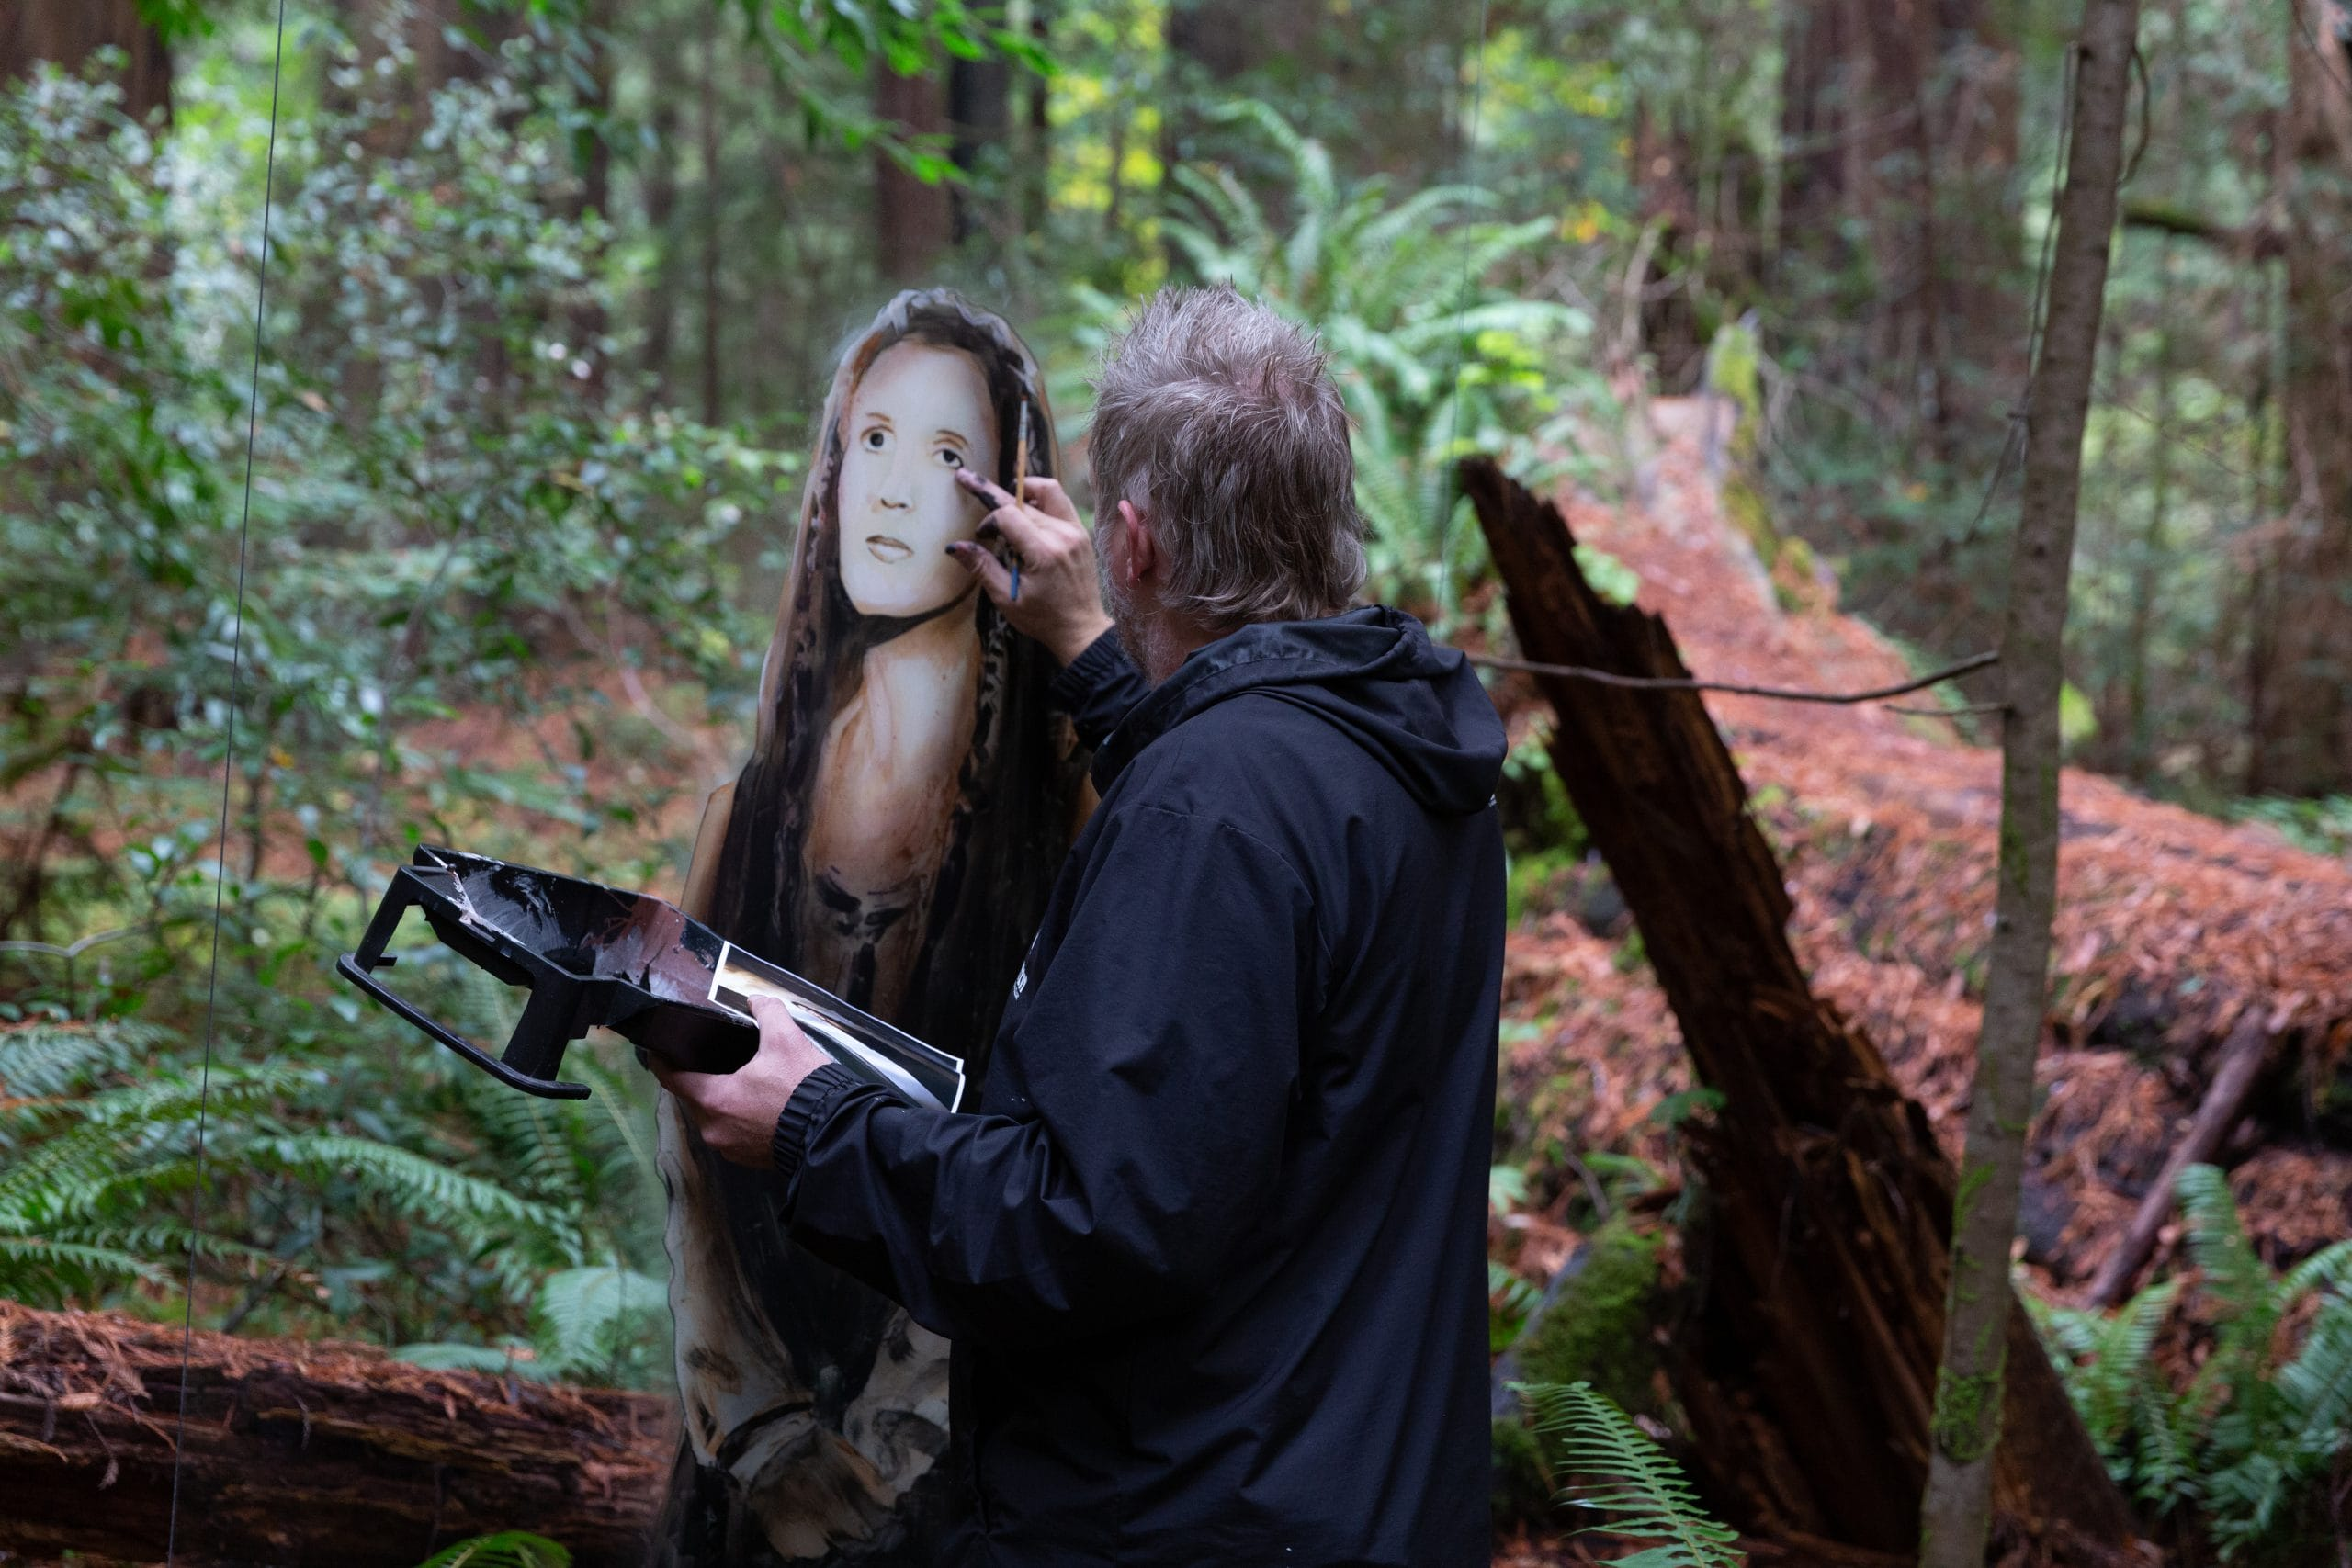 Shane Grammer painting Carrie Fisher mural in wilderness back to camera